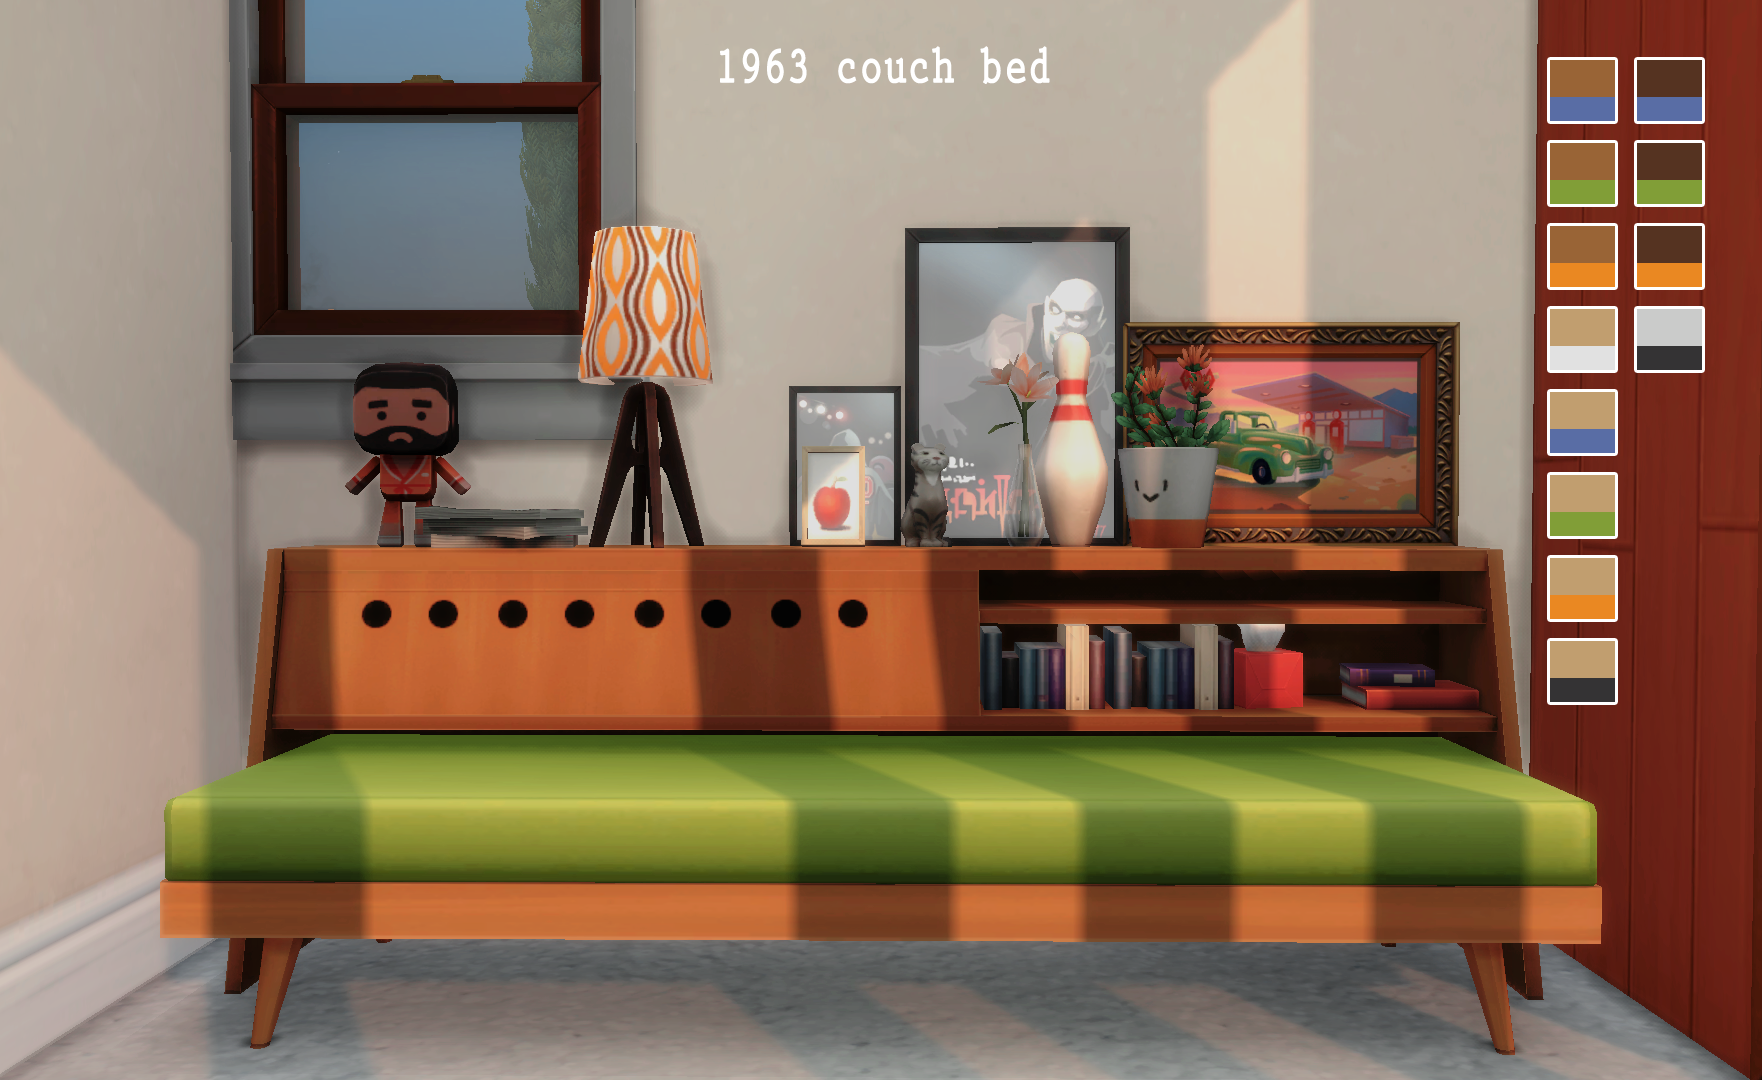 Pin by Stu on Sims 4 CC in 2020 Sims, Couch bed